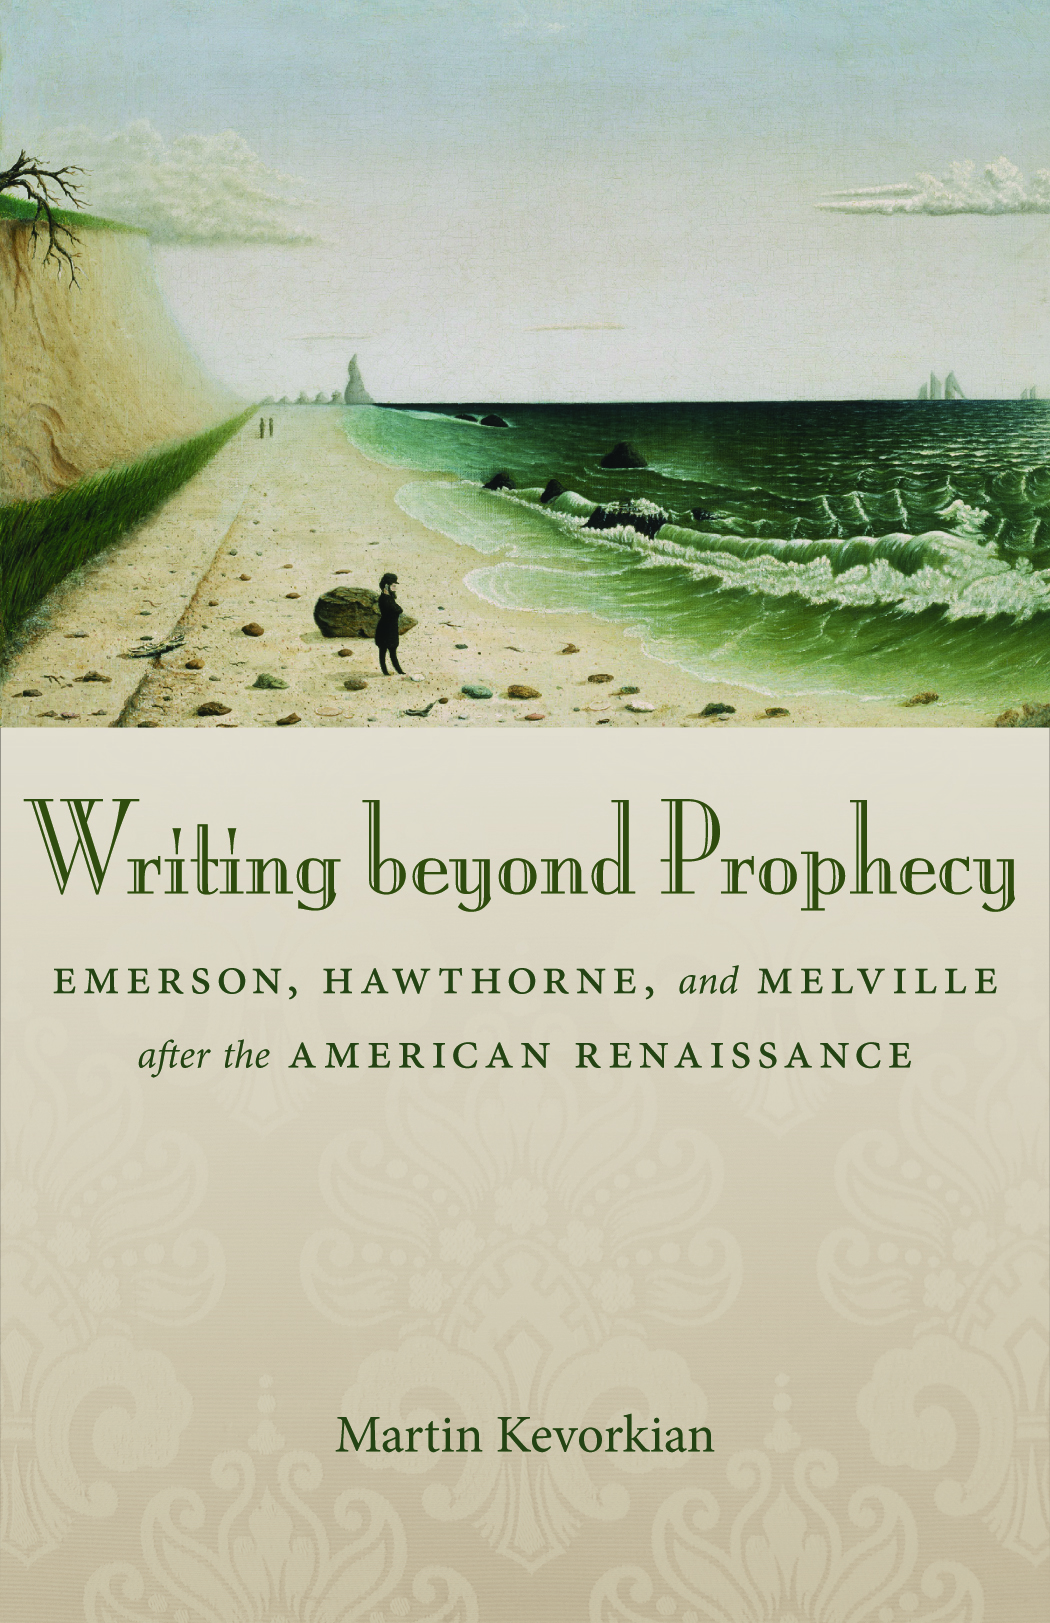 Writing Beyond Prophecy cover image